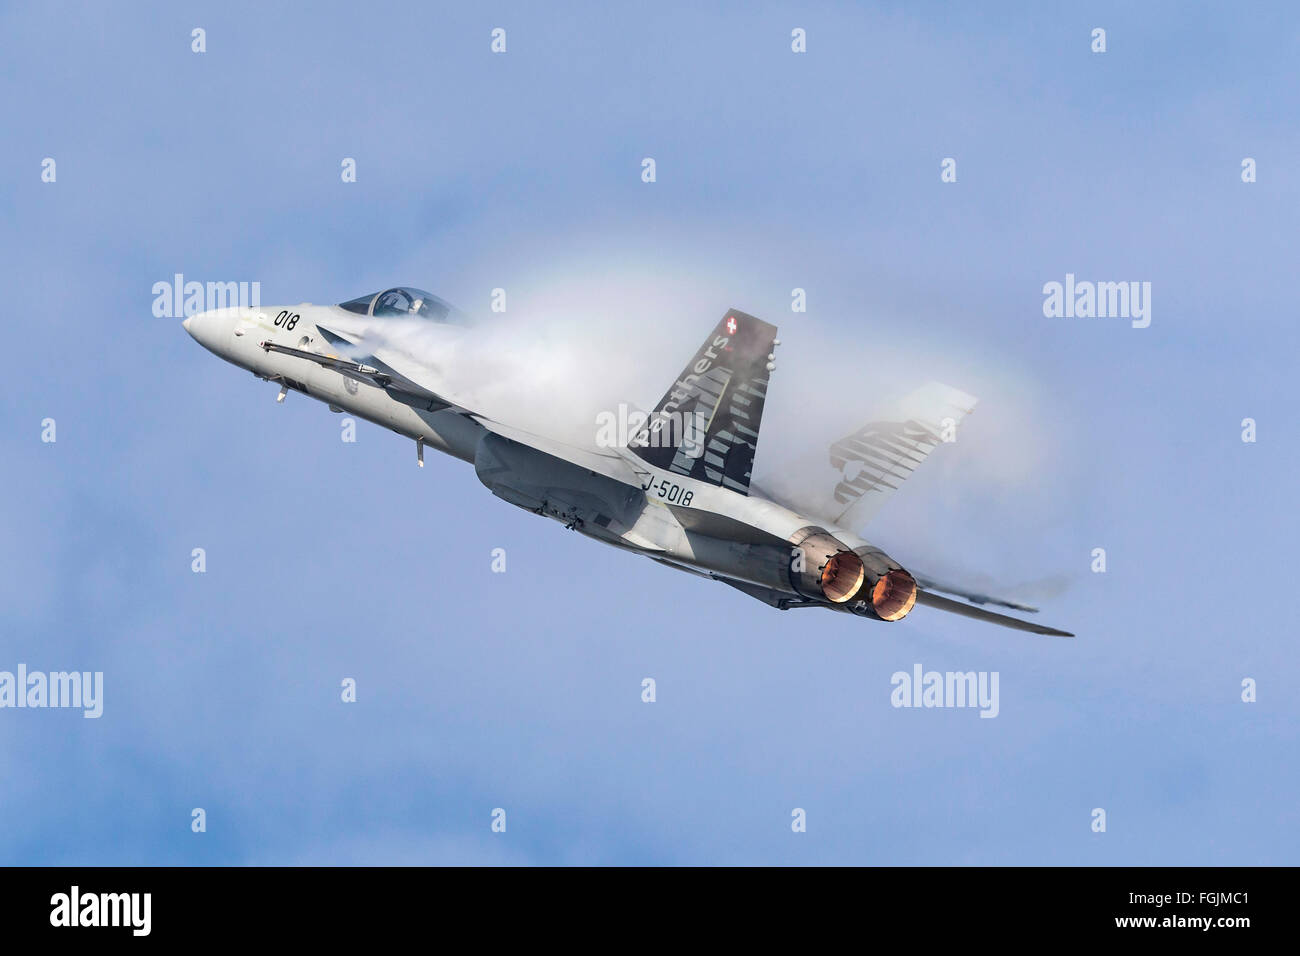 McDonnell Douglas F/A-18C Hornet J-5018 of the Swiss Air Force - Stock Image